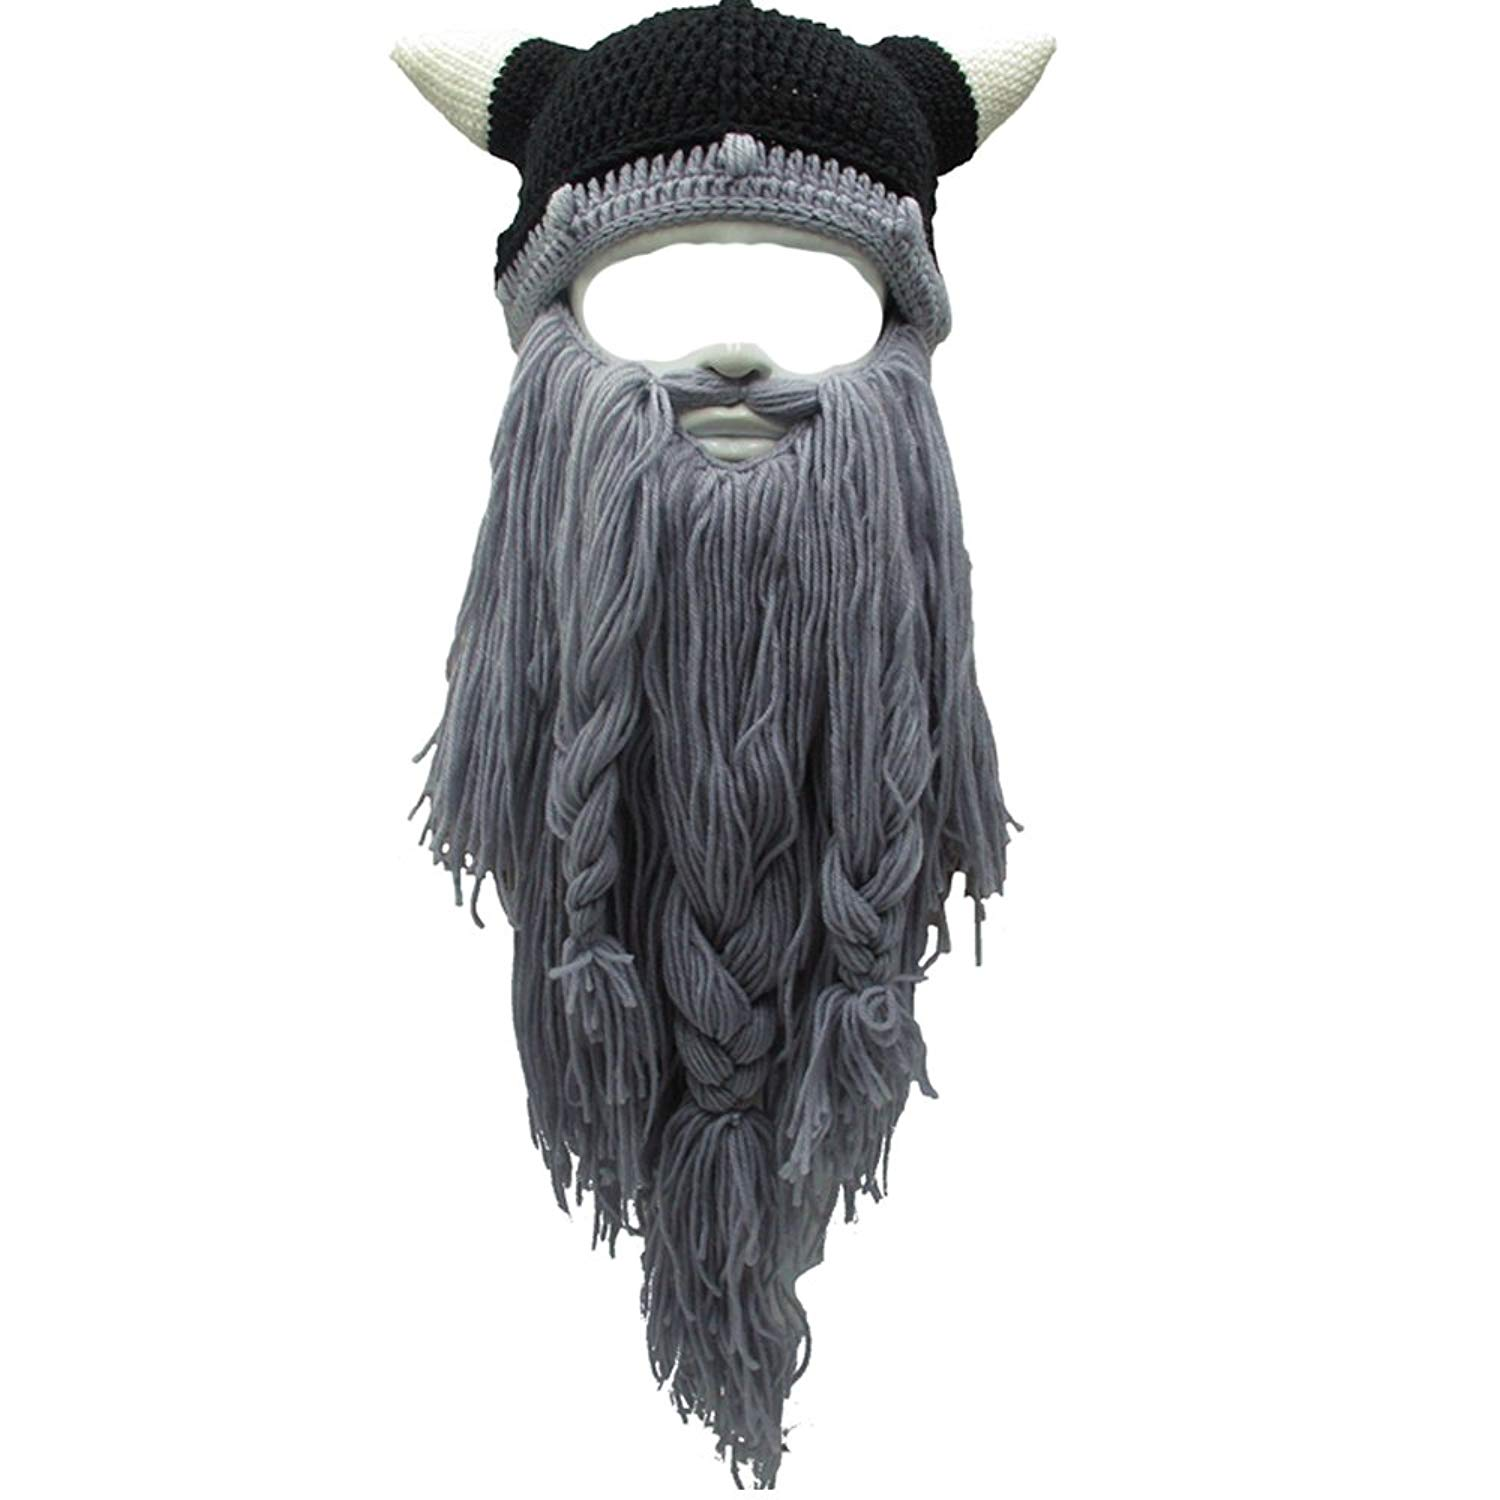 c6681c9284d Get Quotations · Flyou Adult Viking Beard Beanie Horn Hat Winter Warm Mask  Hat Knitted Wool Funny Skull Cap